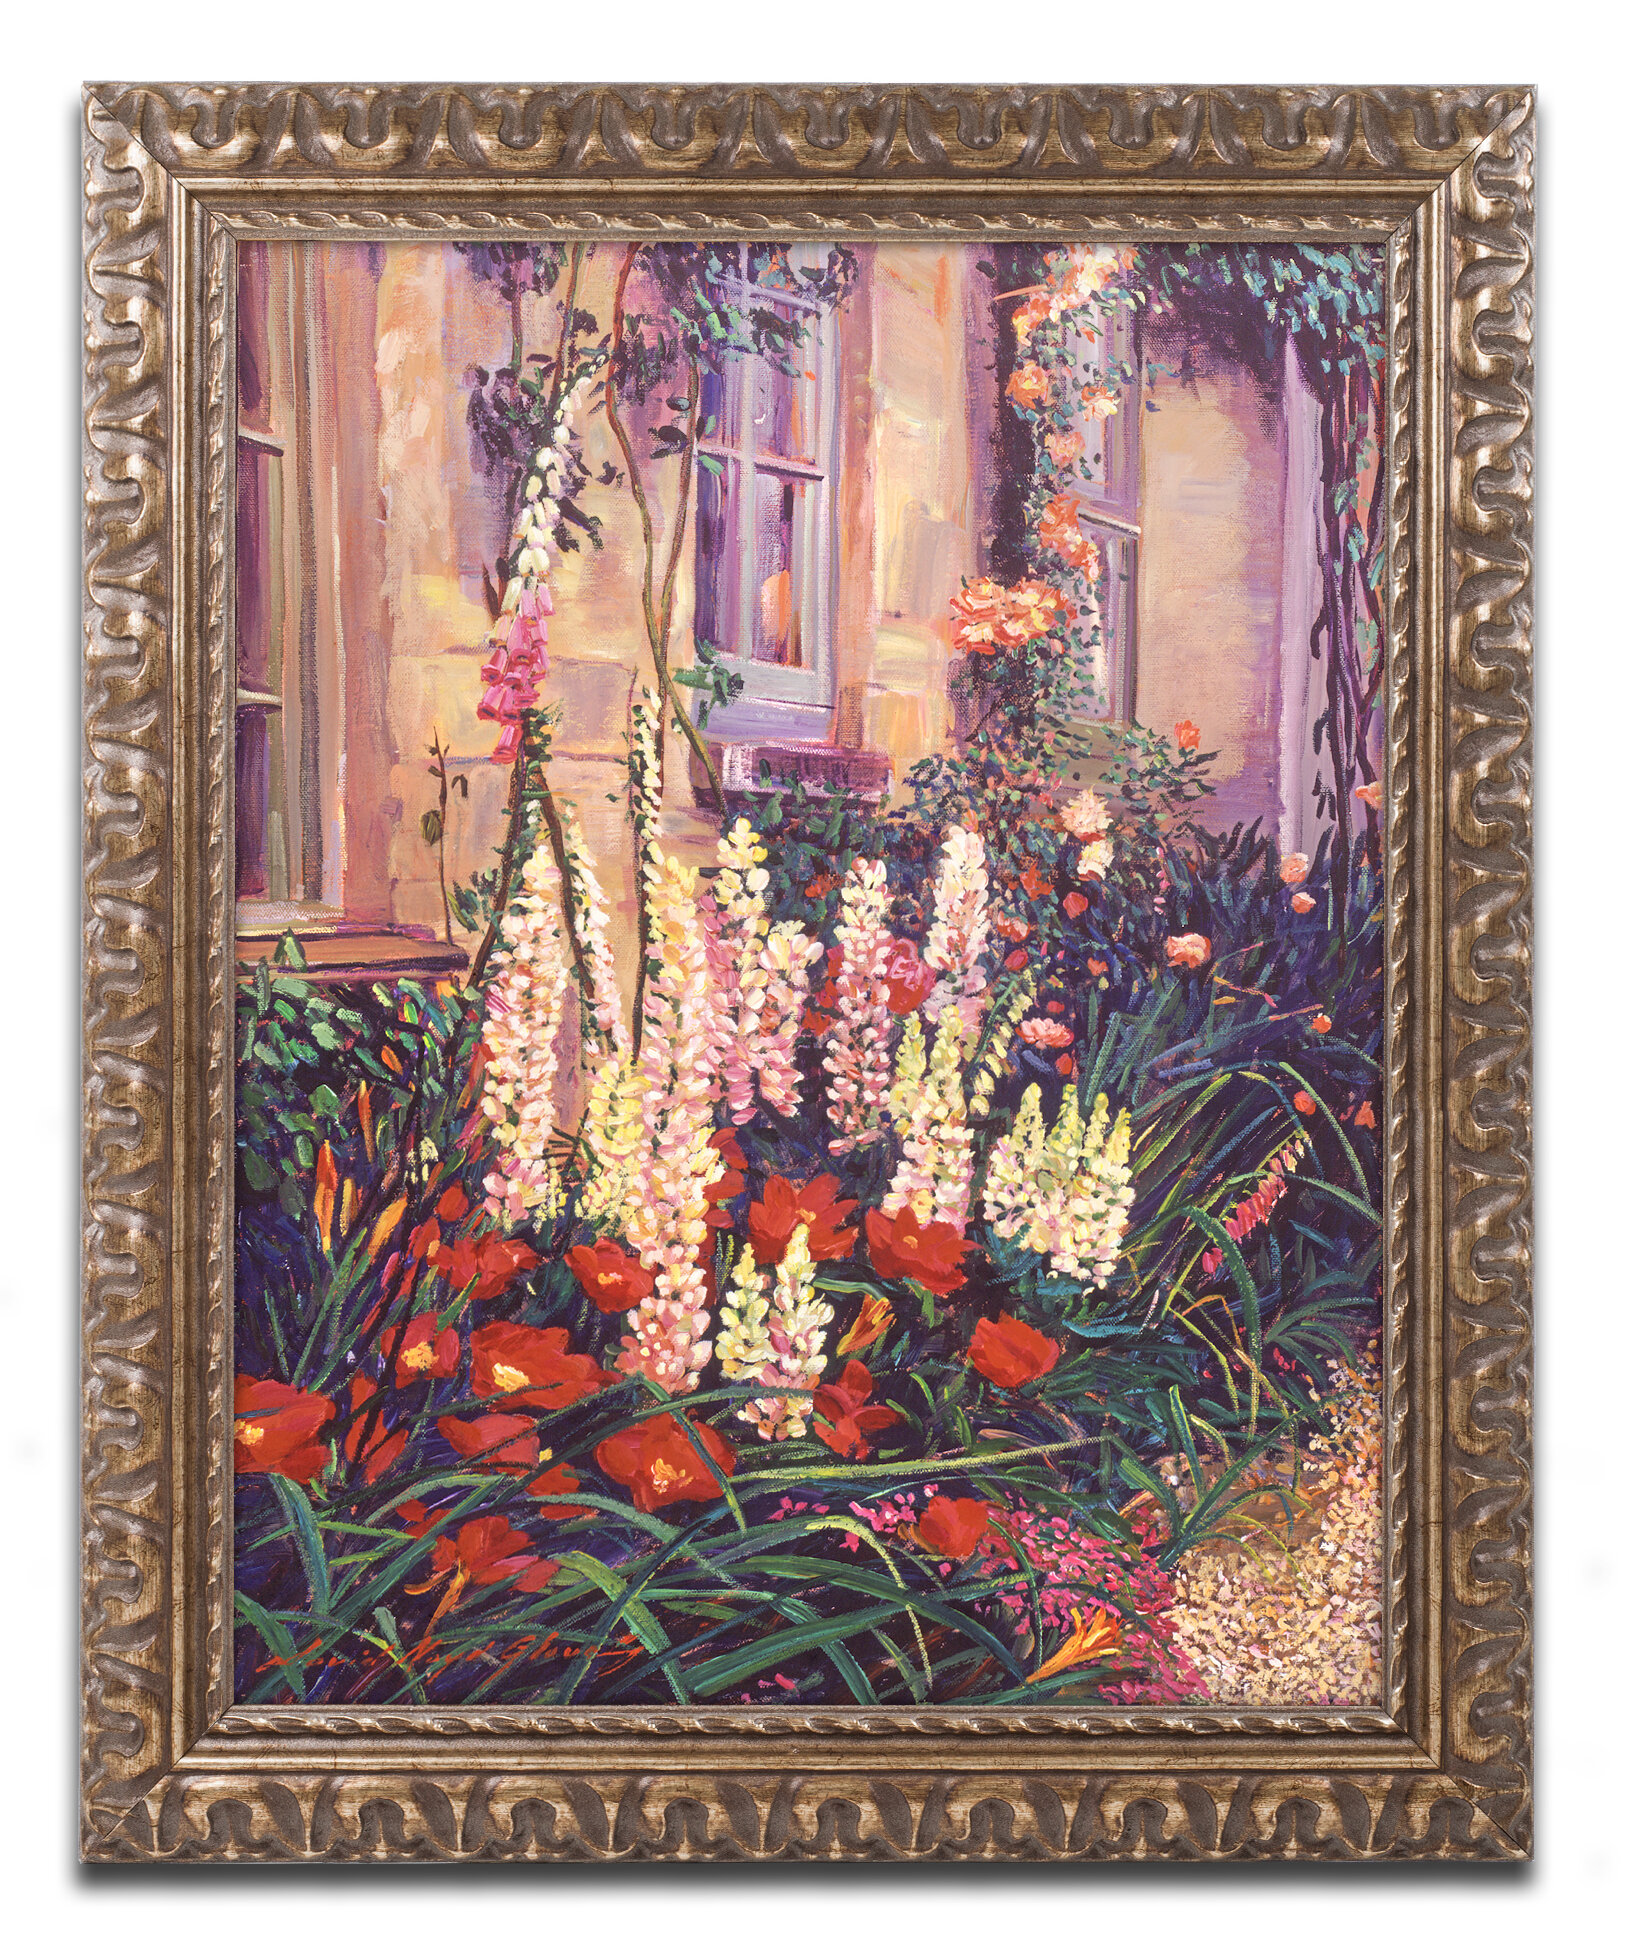 Trademark Art English Cottage Garden By David Lloyd Glover Ornate Framed Painting Print